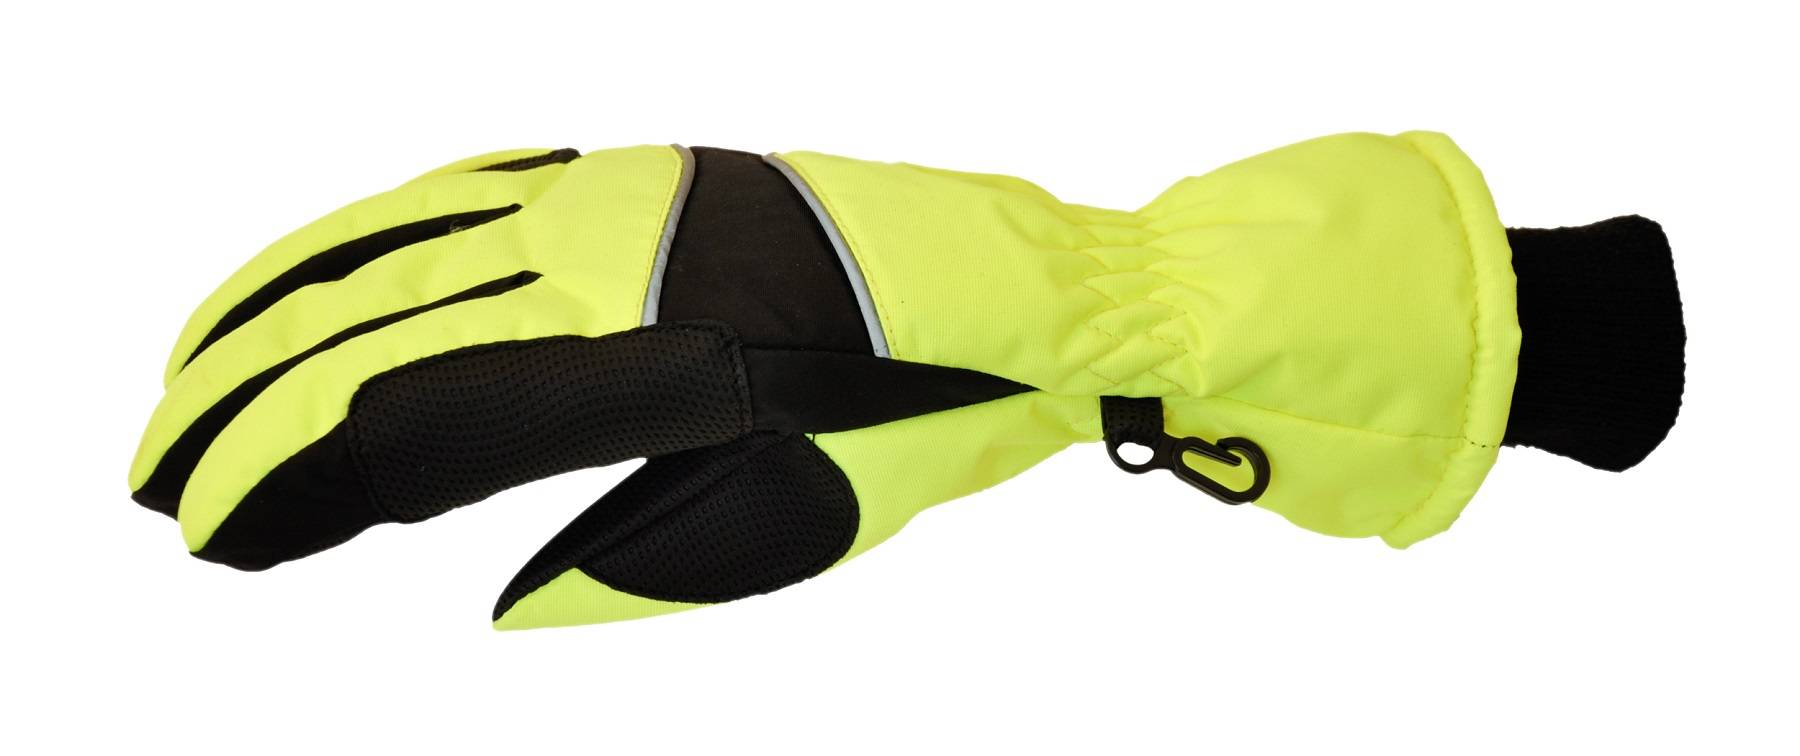 Jacson 5-Finger Handske Thermo Neon Gul S